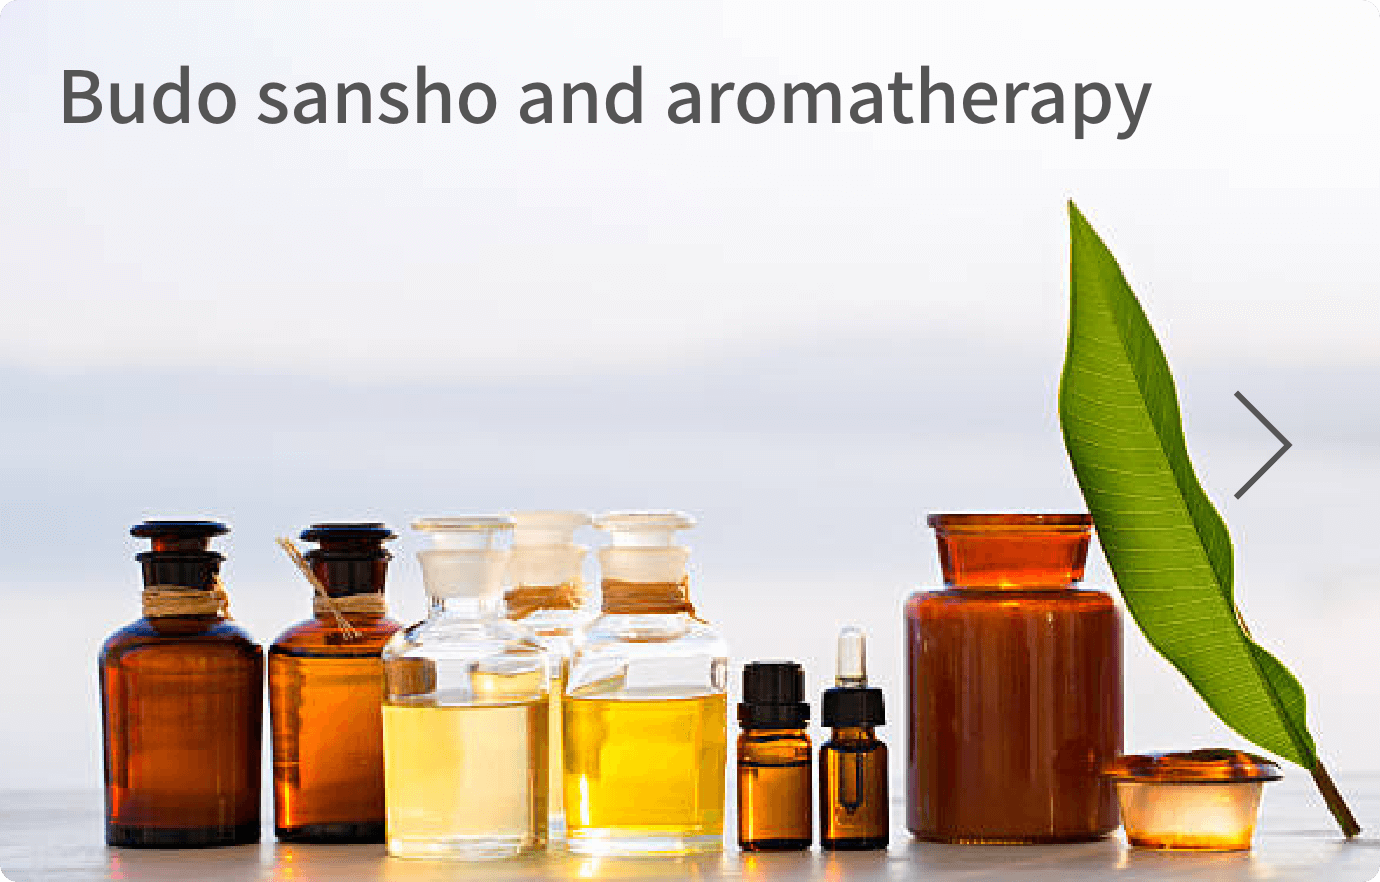 Budo sansho essential oil